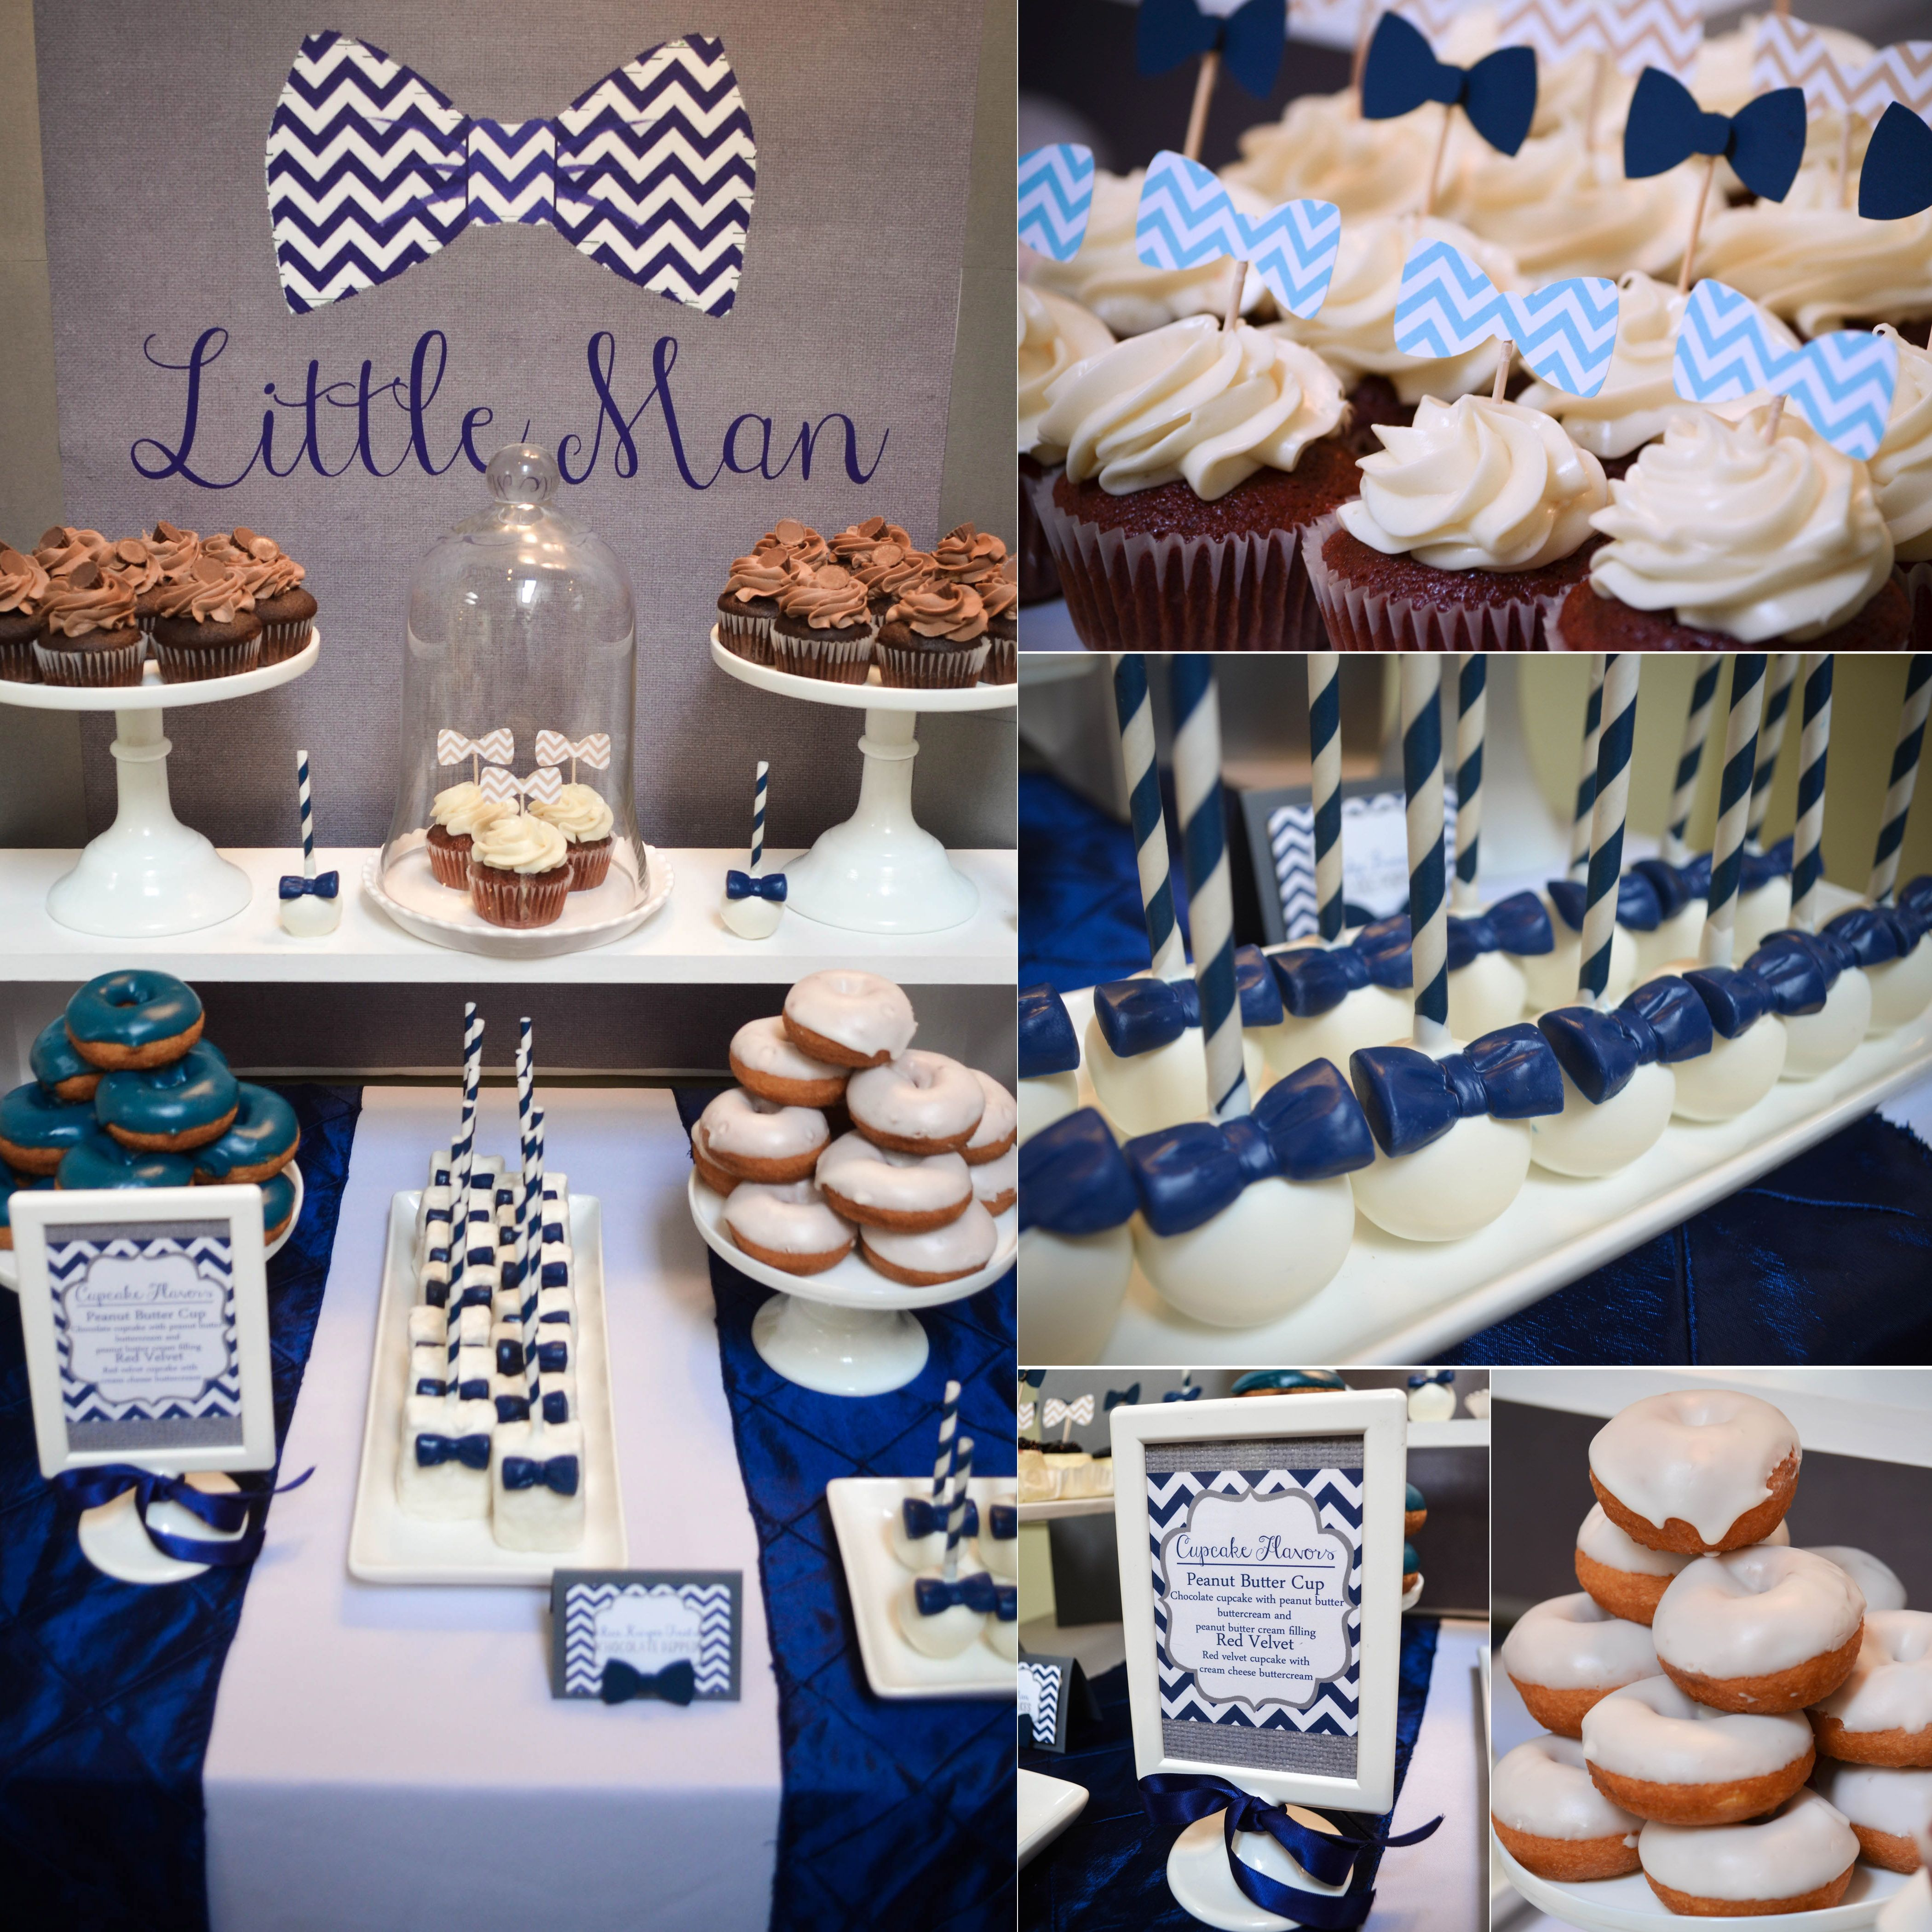 Our Little Man Baby Shower